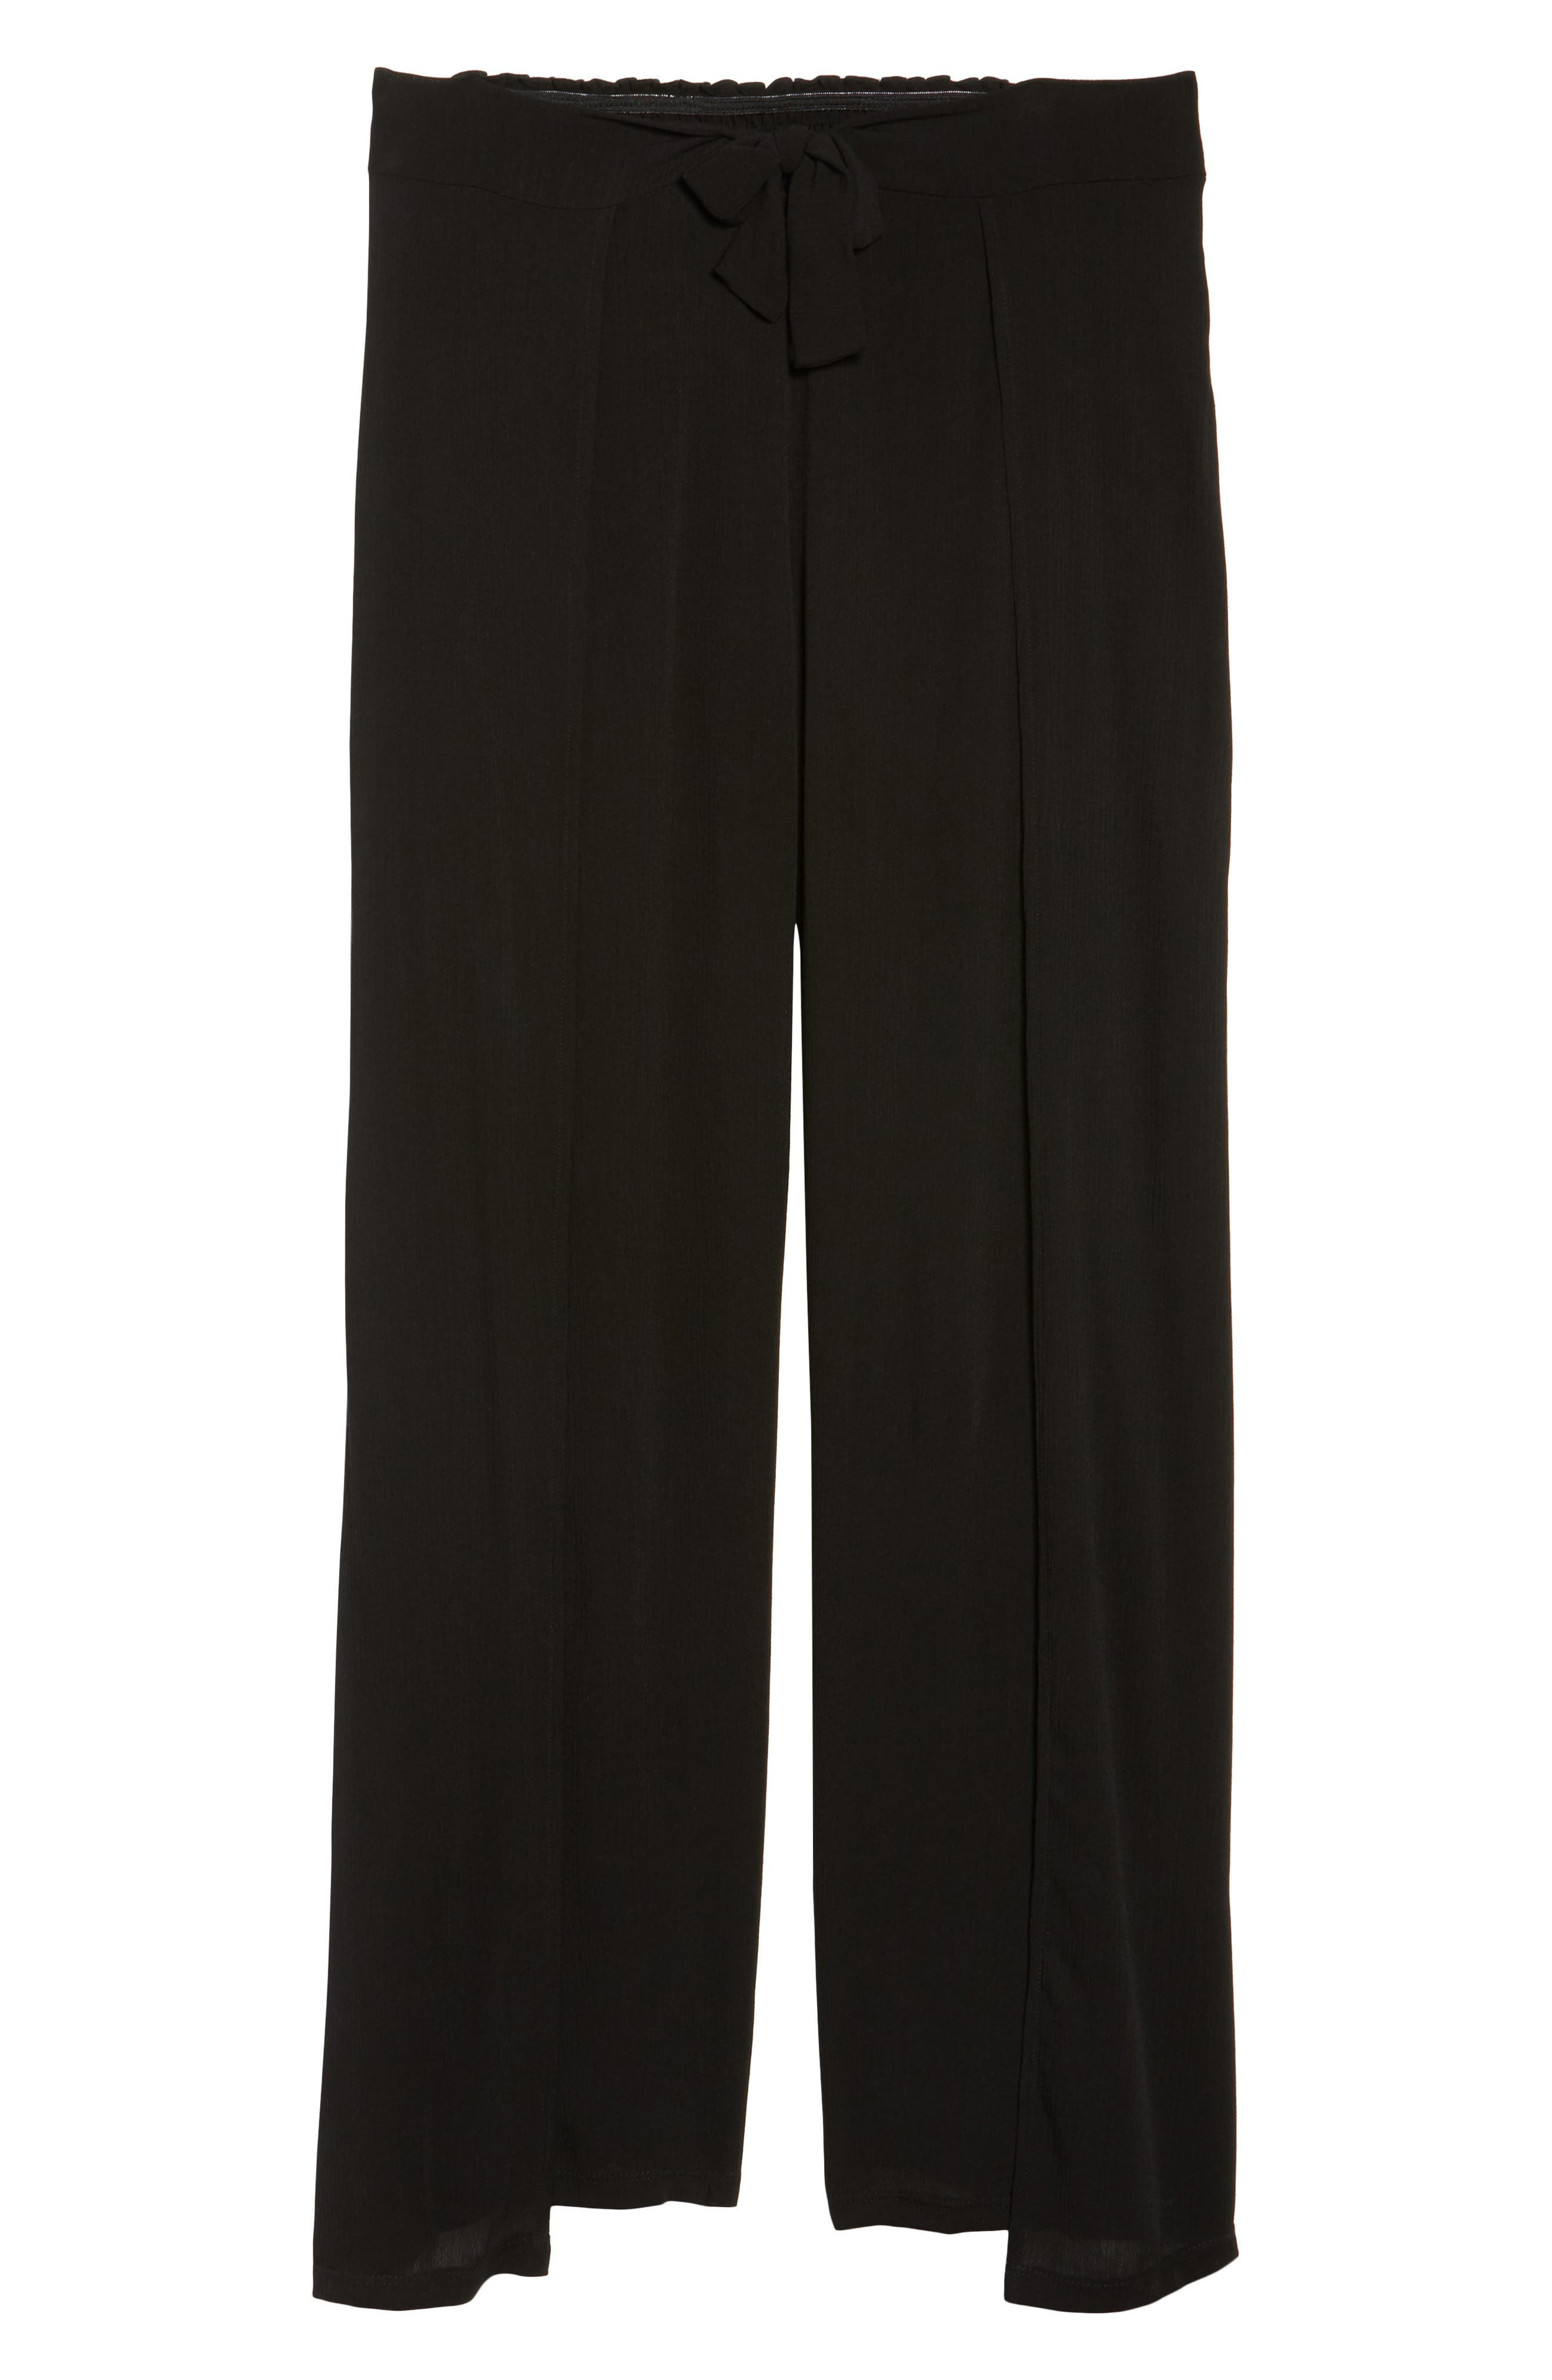 Modern Muse Cover-Up Pants,                             Alternate thumbnail 6, color,                             Black